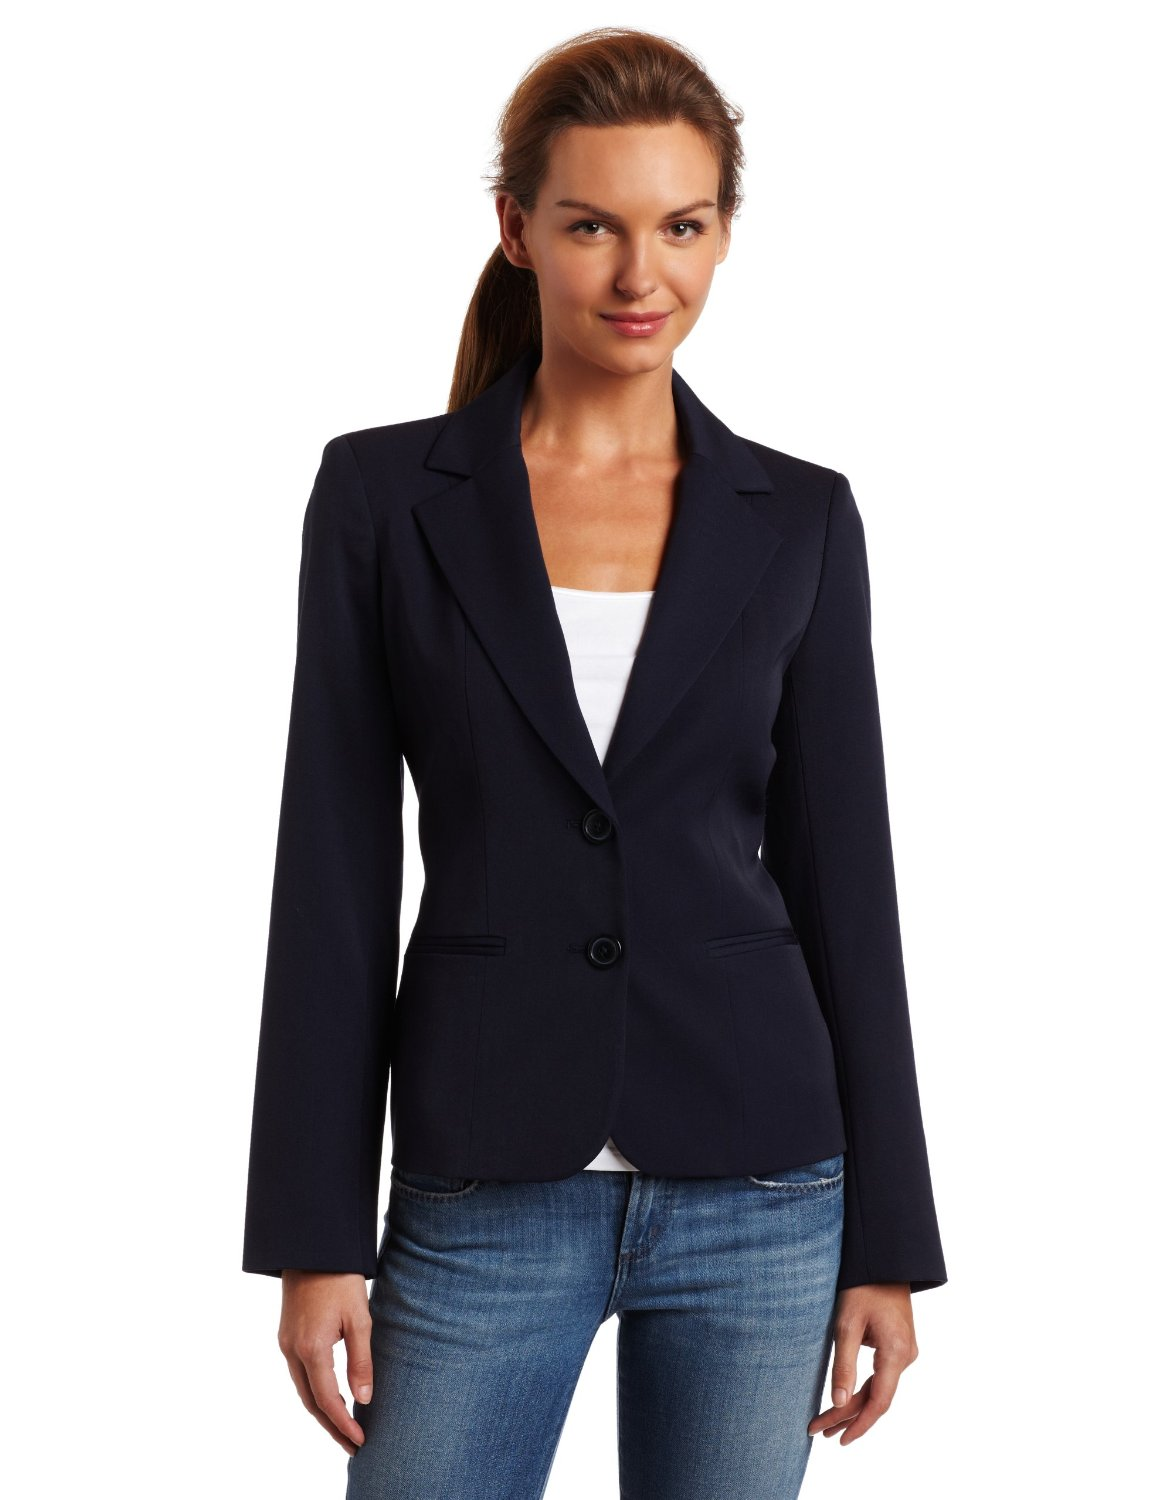 Find Blazer from the Womens department at Debenhams. Shop a wide range of Coats & jackets products and more at our online shop today.